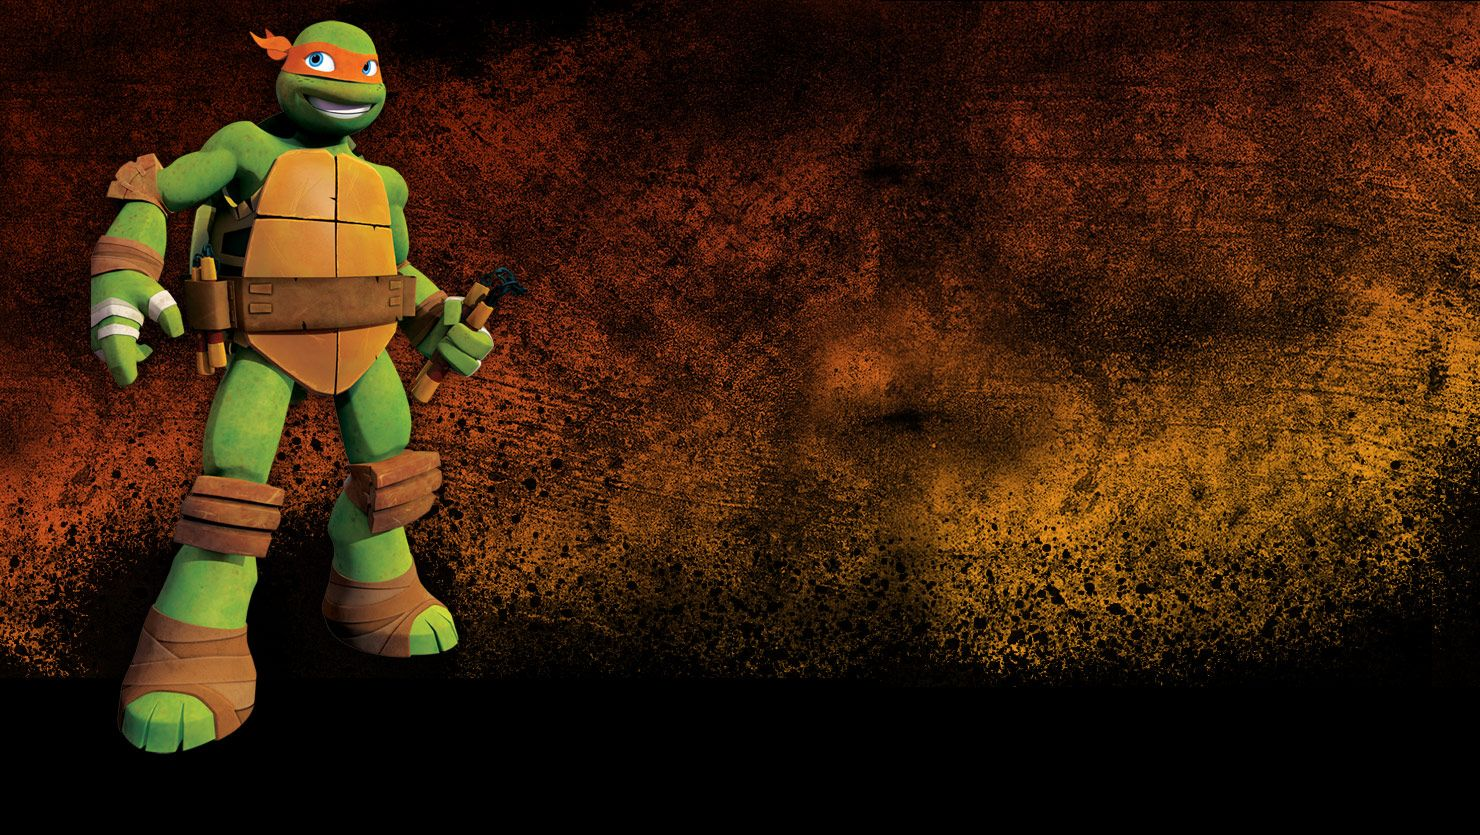 Tmnt Michelangelo Wallpapers Top Free Tmnt Michelangelo